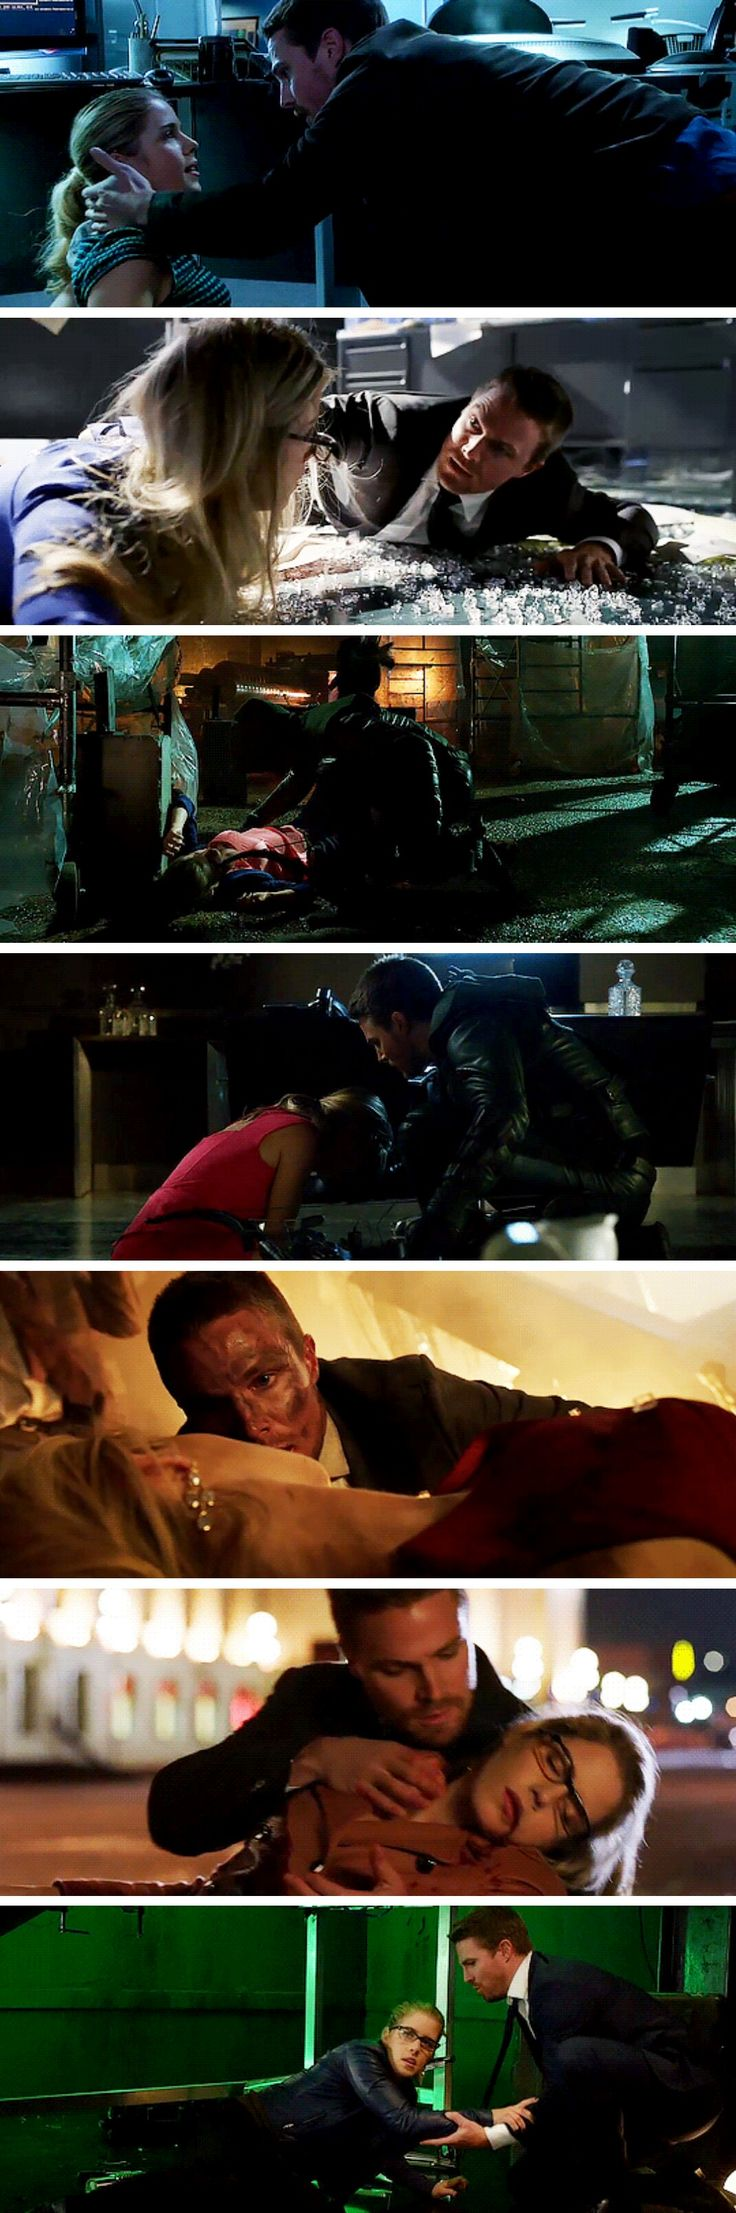 Oliver always protecting Felicity! #Olicity #Arrow #5x10